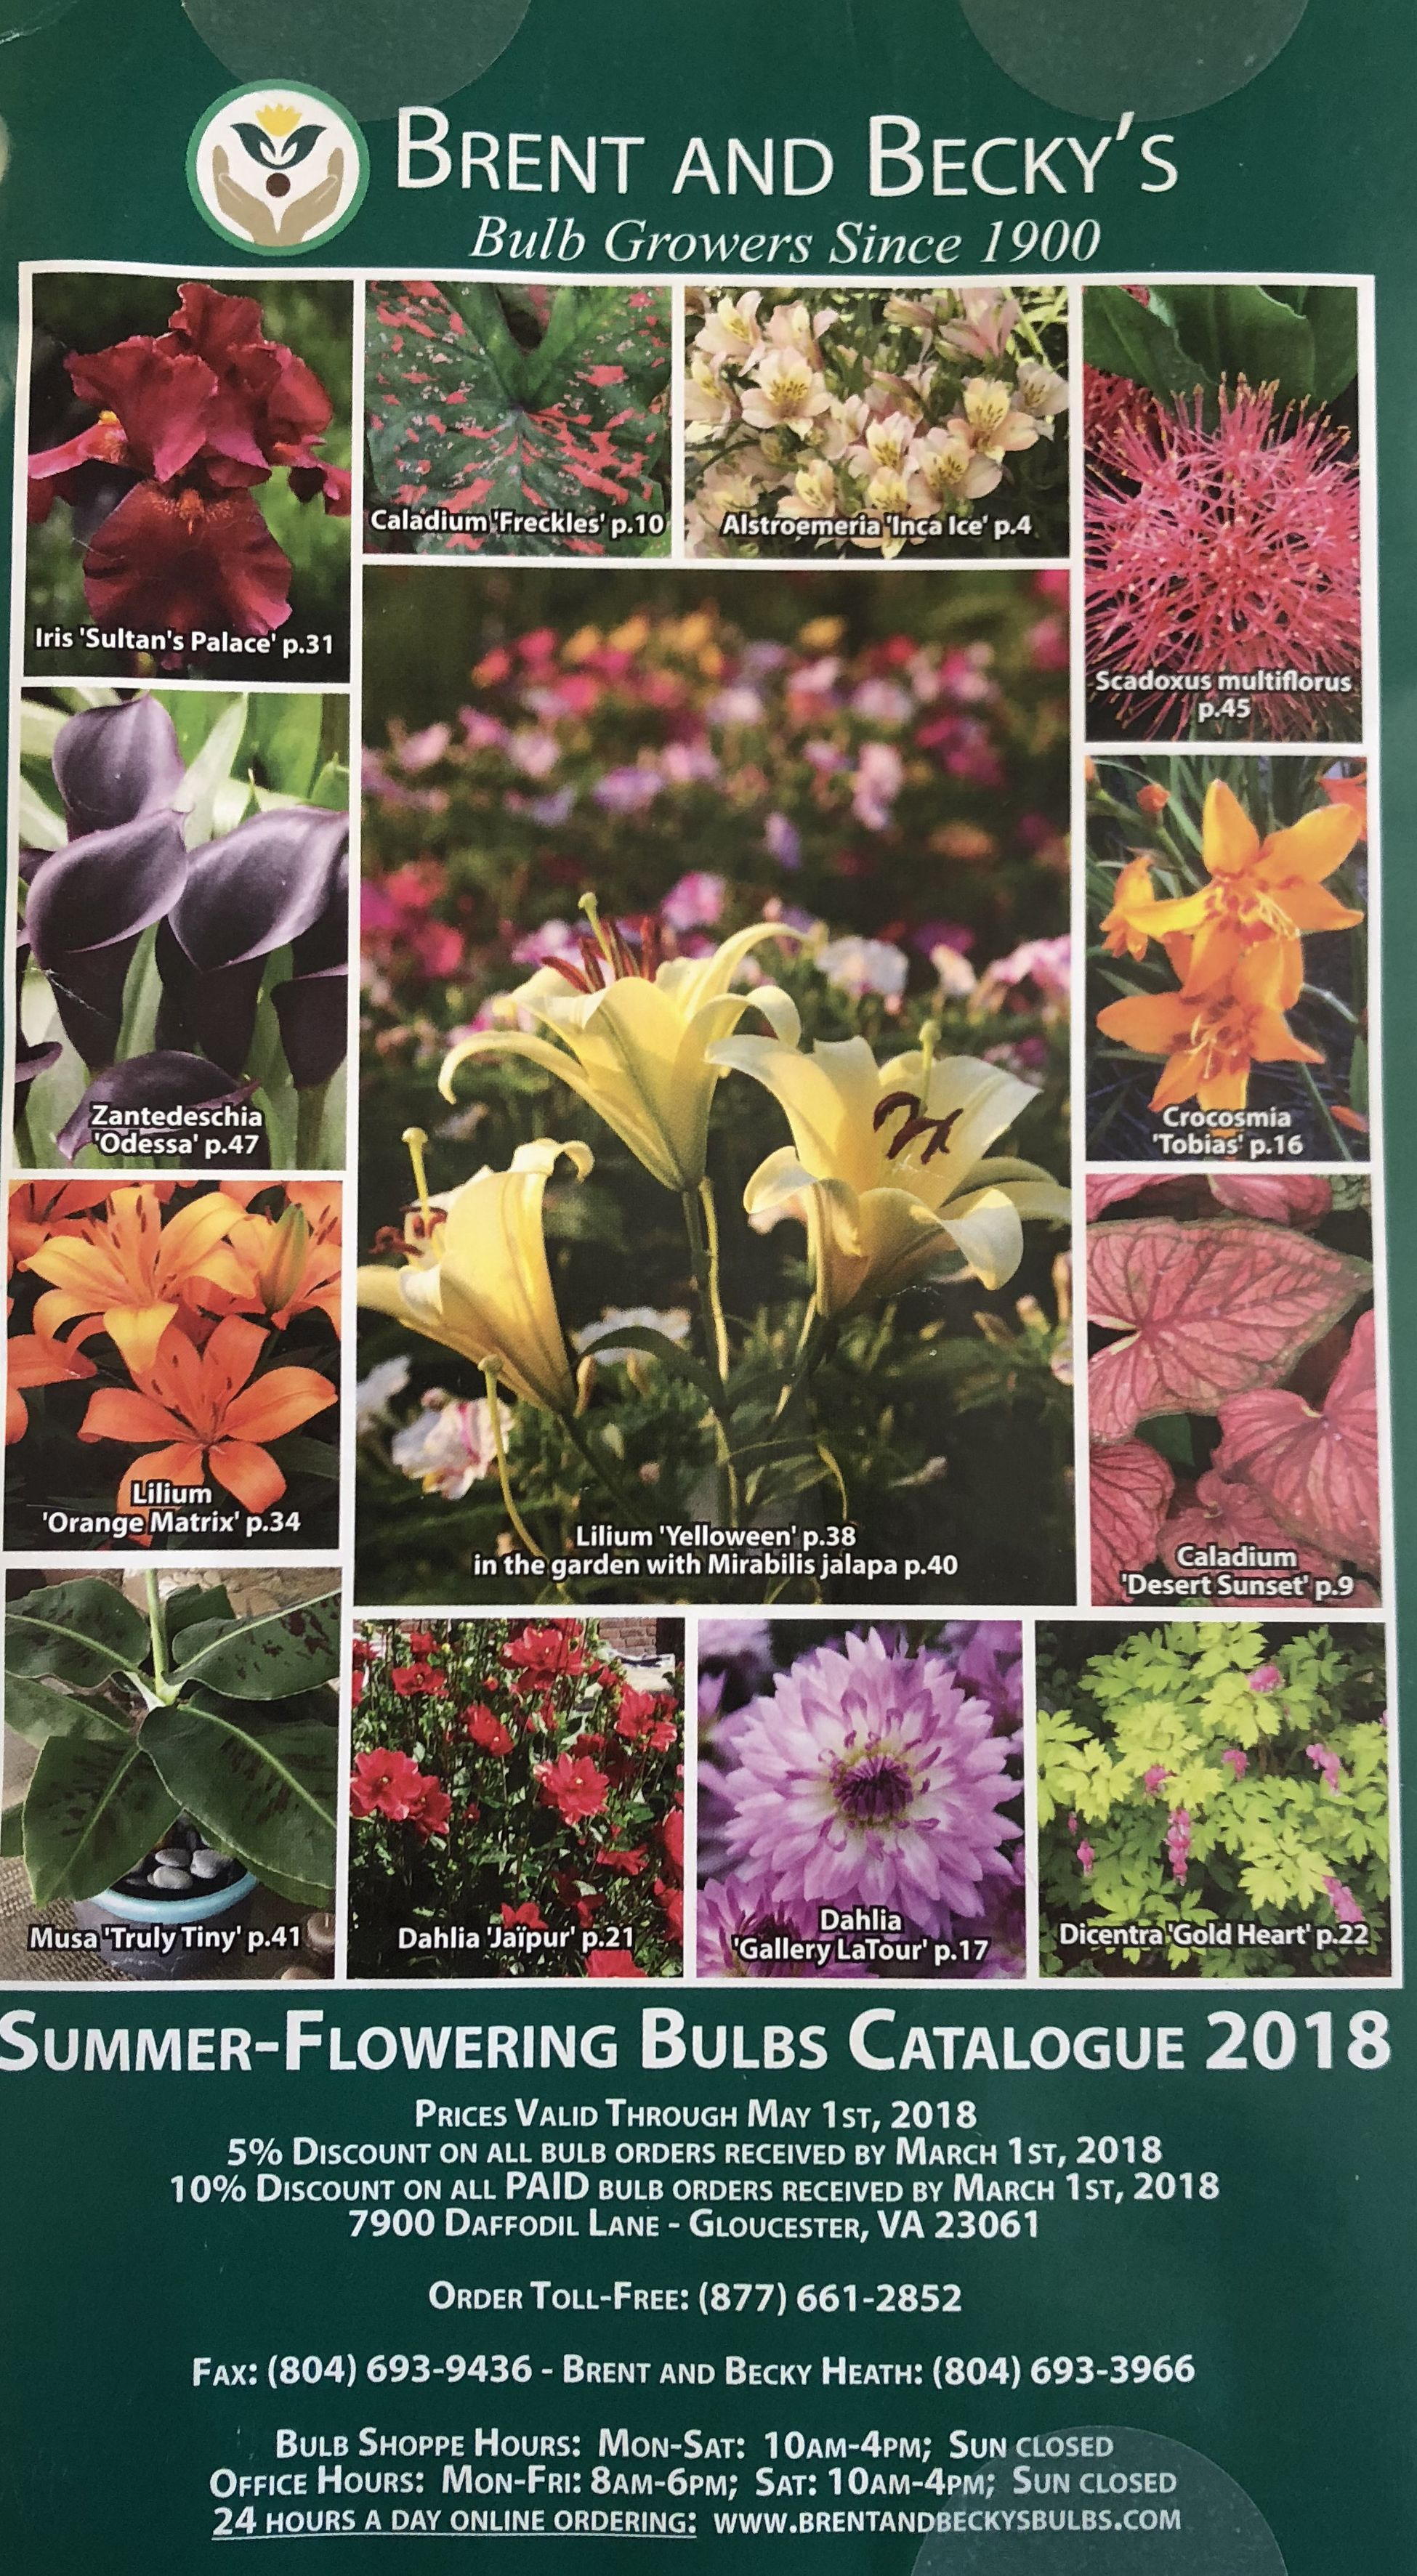 60 Free Seed Catalogs And Plant Catalogs